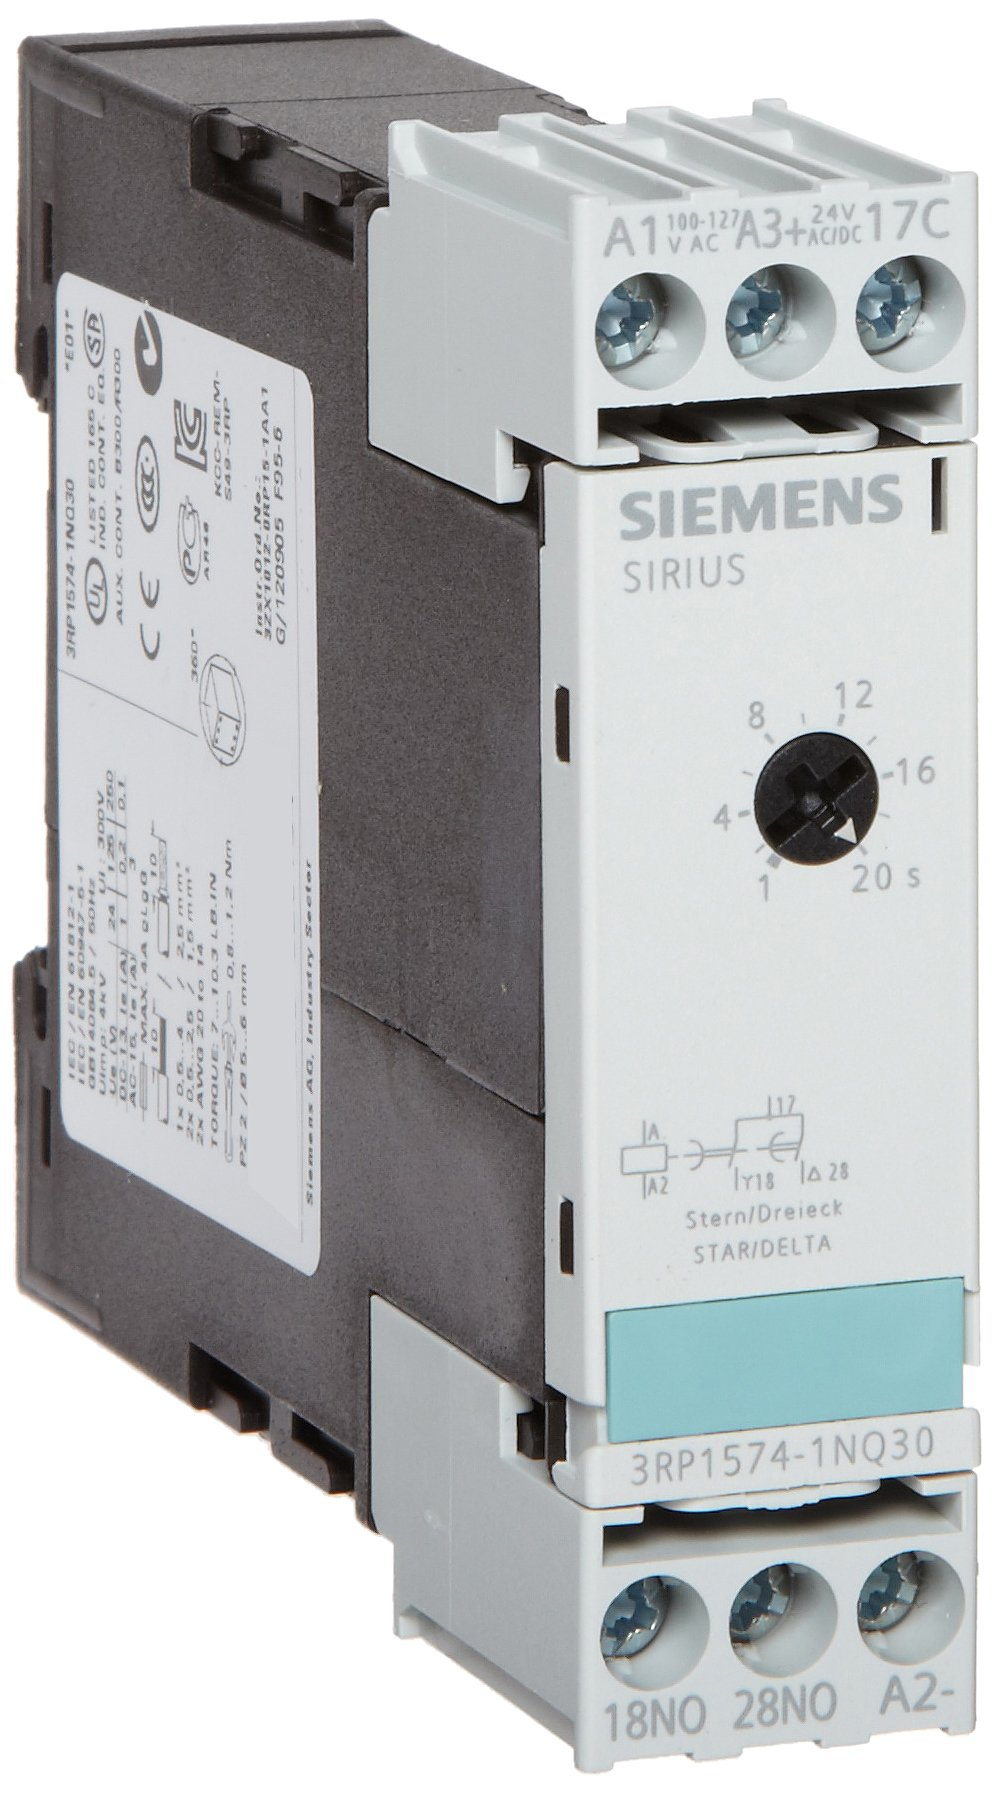 Siemens 3RP1574-1NQ30 Solid State Time Relay, Industrial Housing, 22.5 mm Wide, Screw Terminal, Star-Delta Function, 1 NO + 1 NO Contact Elements, 1-20s Time Range, AC/DC 24, 100-127 VAC Control Supply Voltage